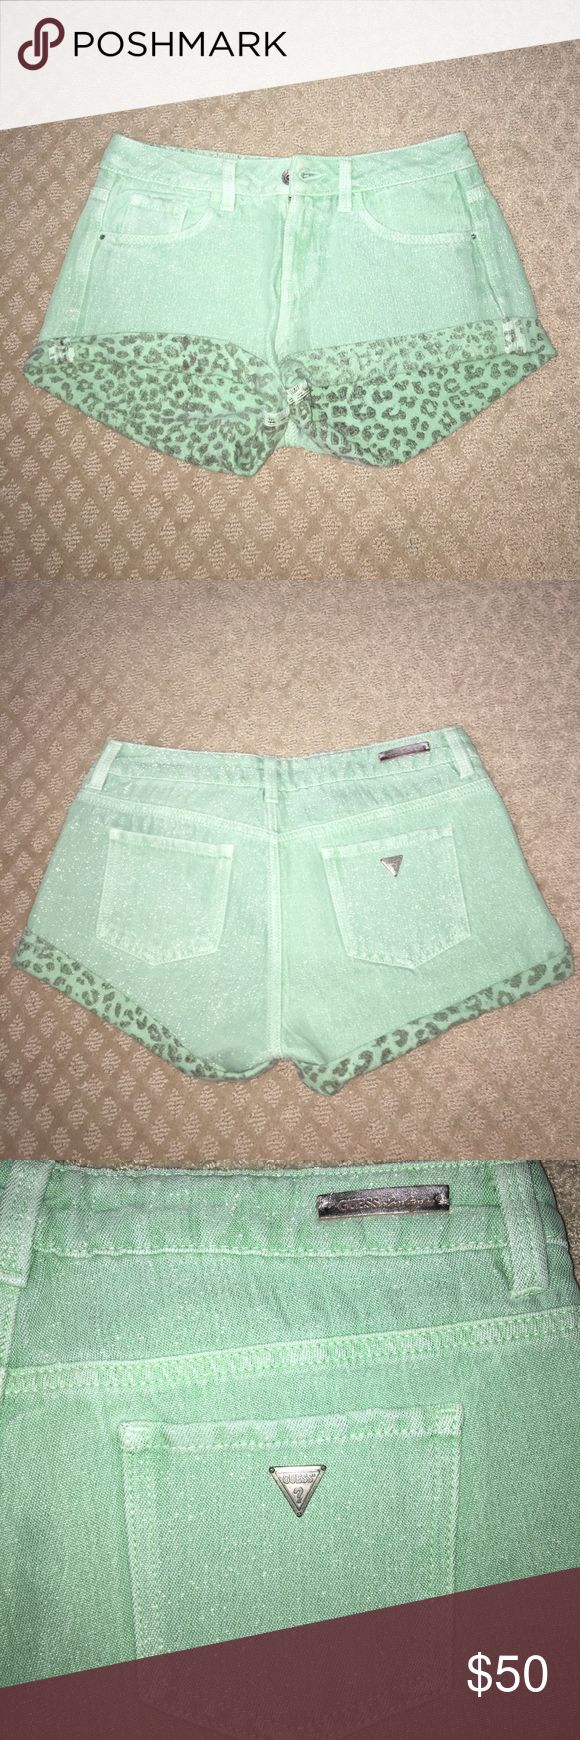 Guess mint green denim mid waisted shorts Guess mid rise denim shorts. Mint green with silver/Sparkly thread. Inside shorts is a cheetah print and the bottoms roll up giving a cheetah trim. Closes with button and zipper and is a size 26. Worn once Guess Shorts Jean Shorts